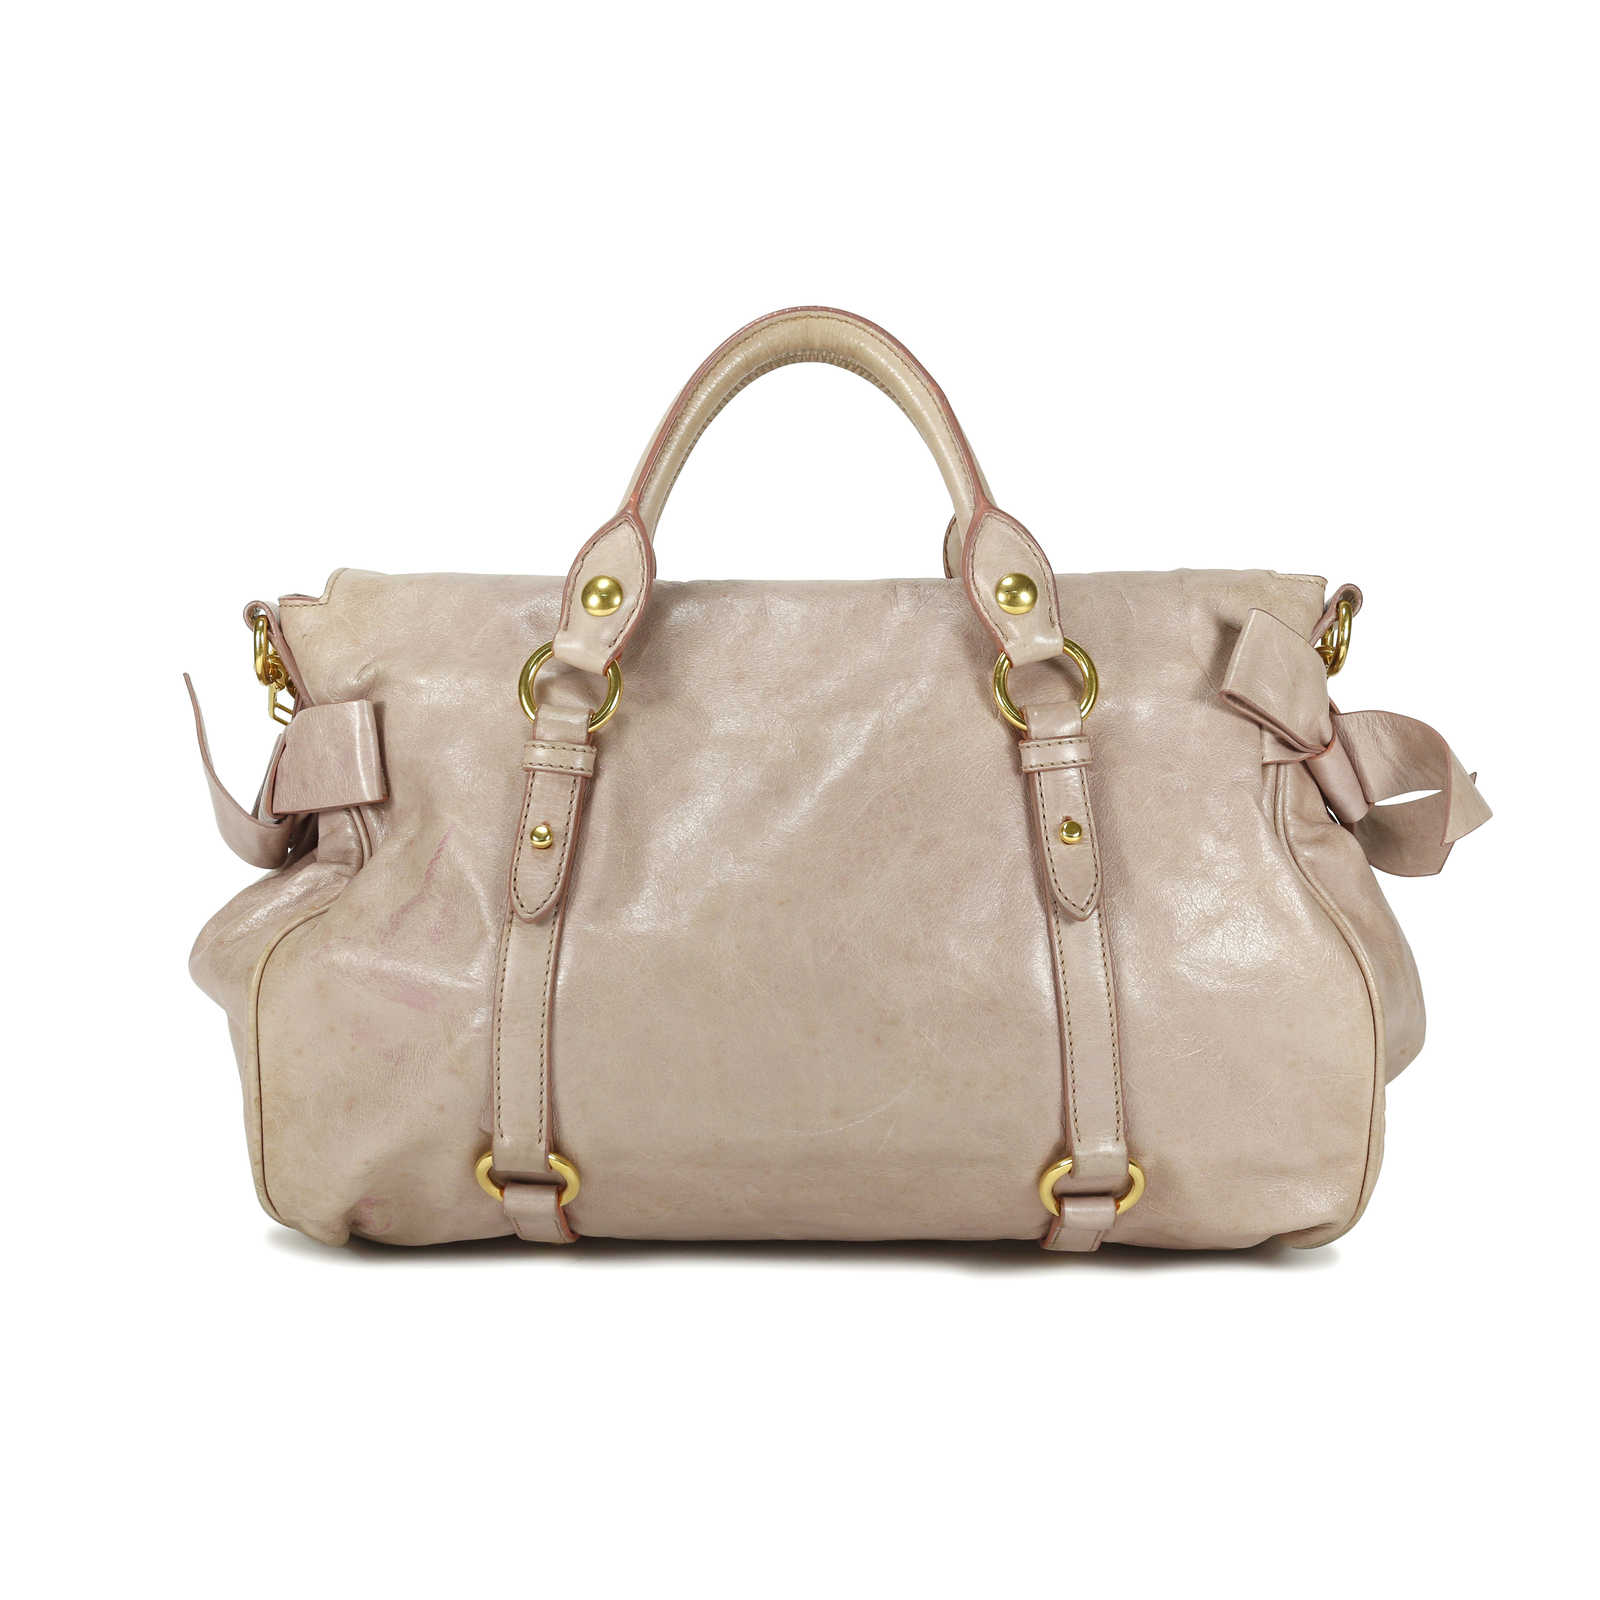 ... Authentic Second Hand Miu Miu Vitello Lux Bow Bag (PSS-150-00002) ... 7a02ce62f7069